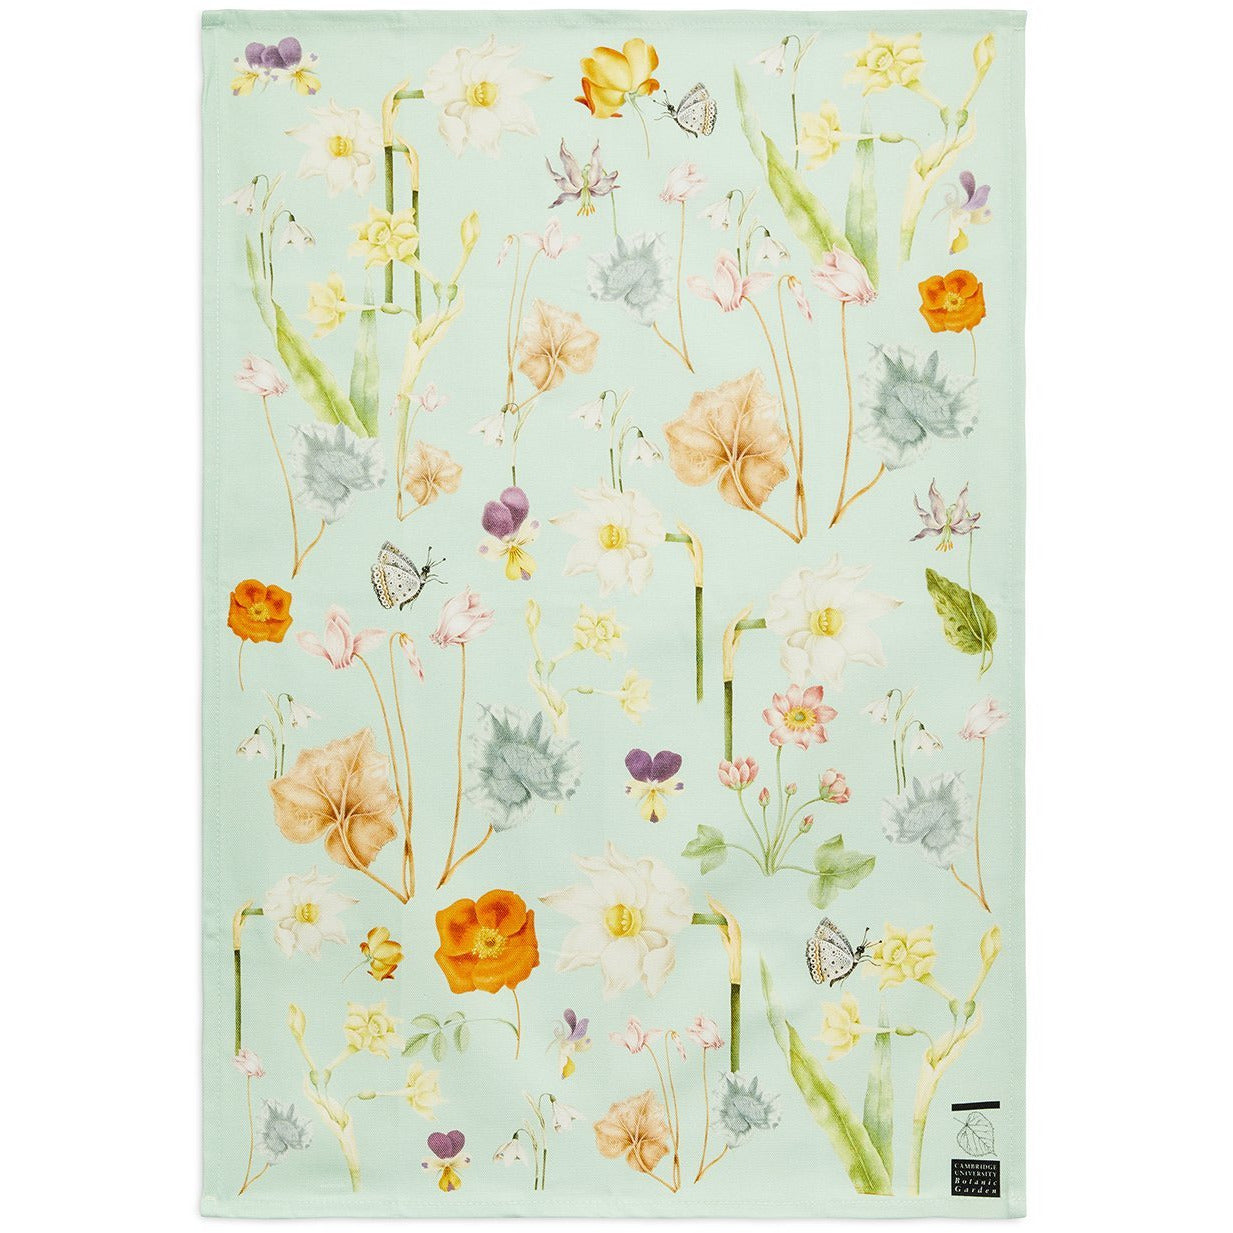 Featured image for the project: Signs of Spring - Tea towel